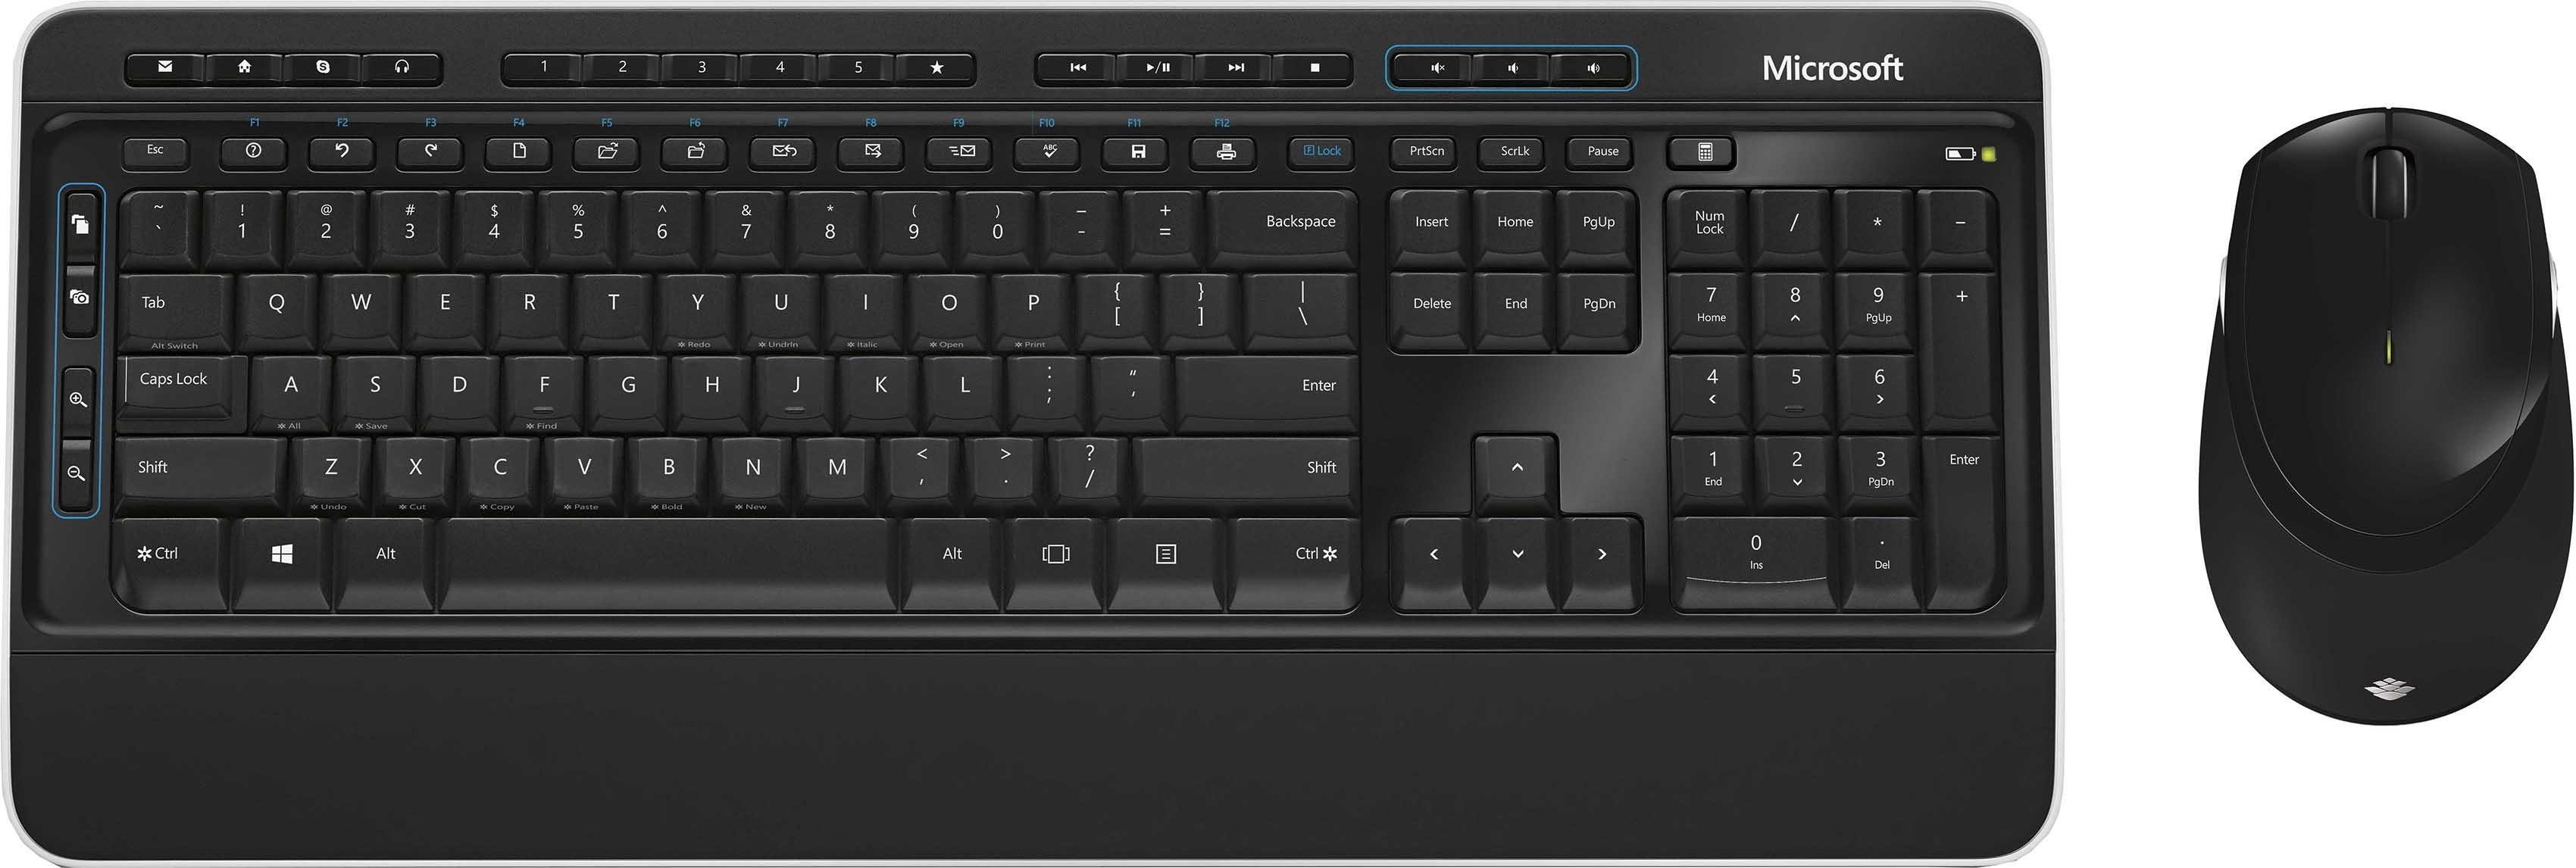 Microsoft Wireless Desktop 3050 Tastatur